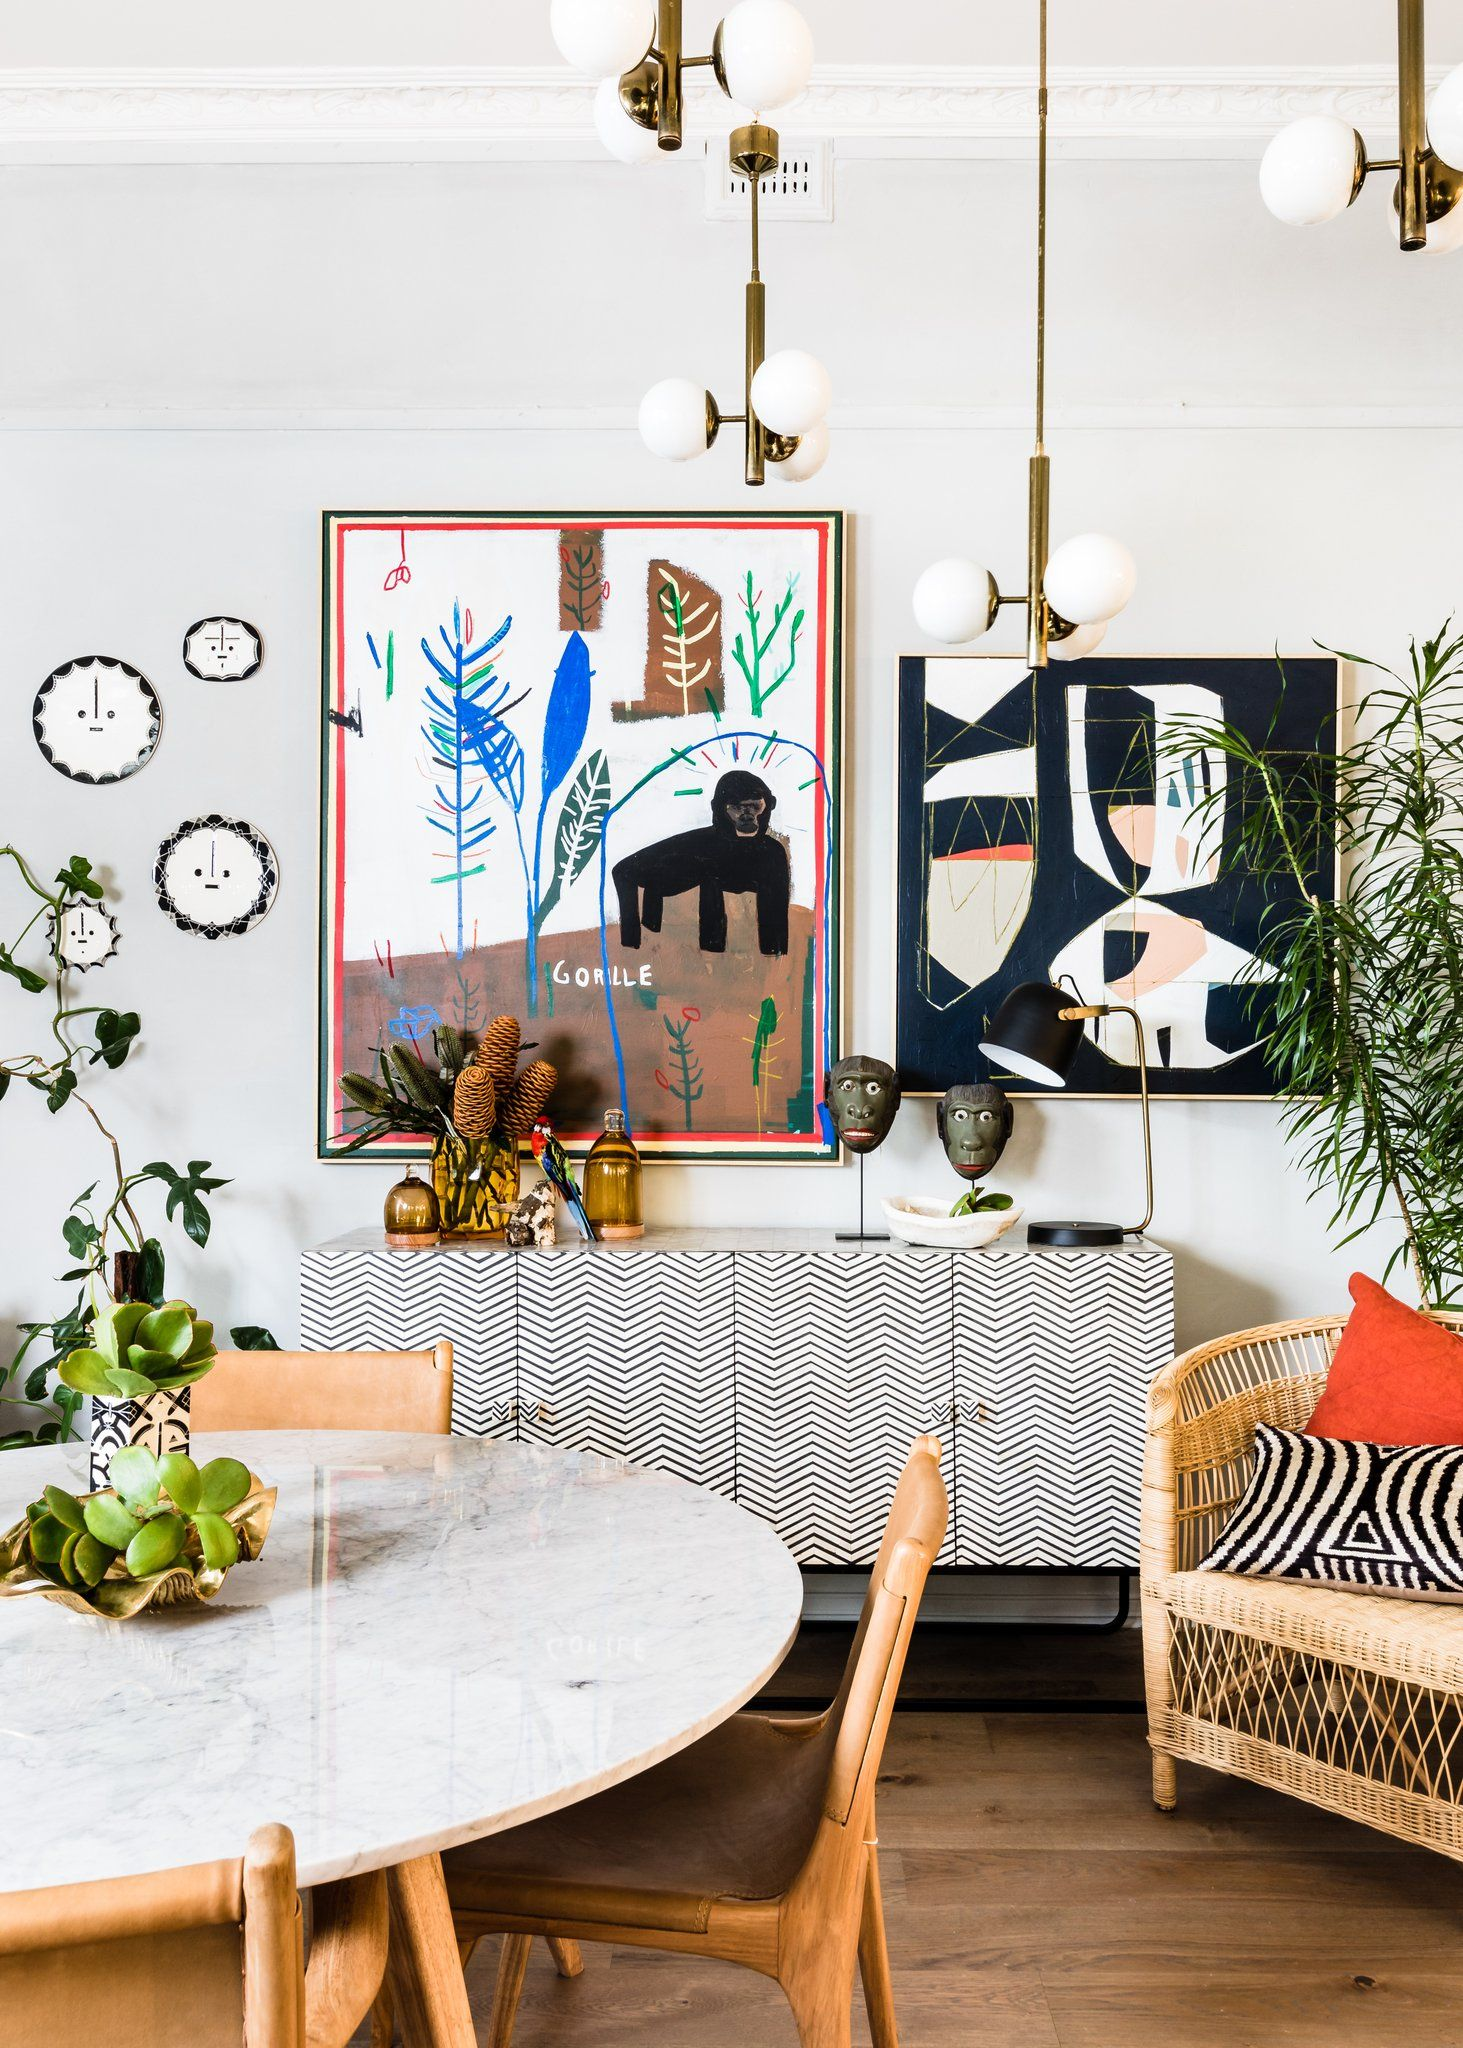 10 Tips to Light Up Your Home in 2020 Decor, Decorate